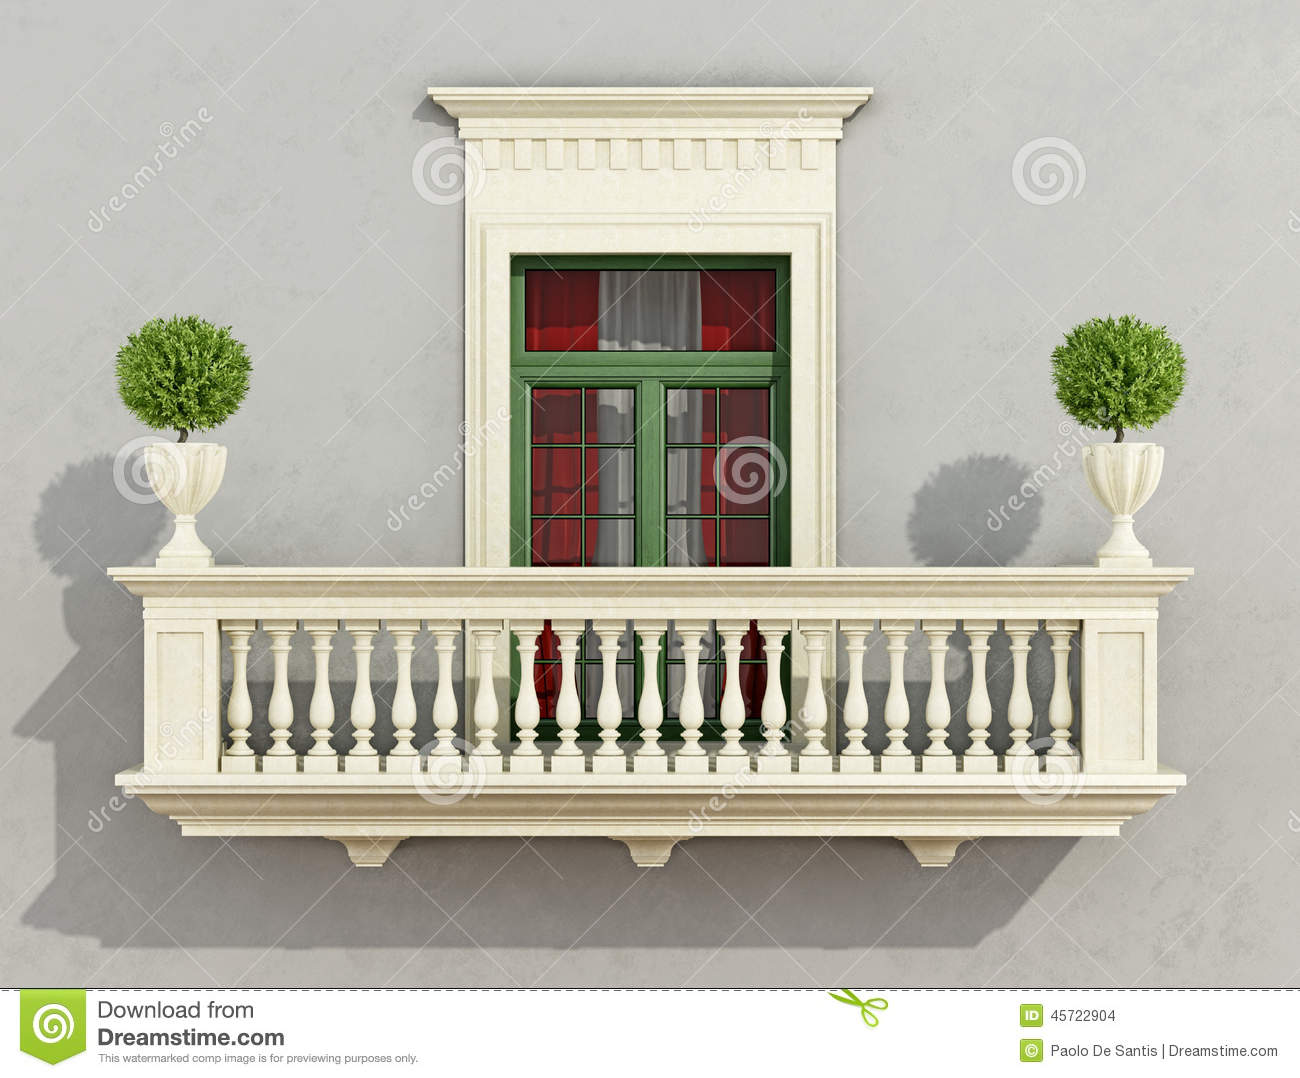 Balcony In Marble Wall : Classic facade stock illustration image of decorative